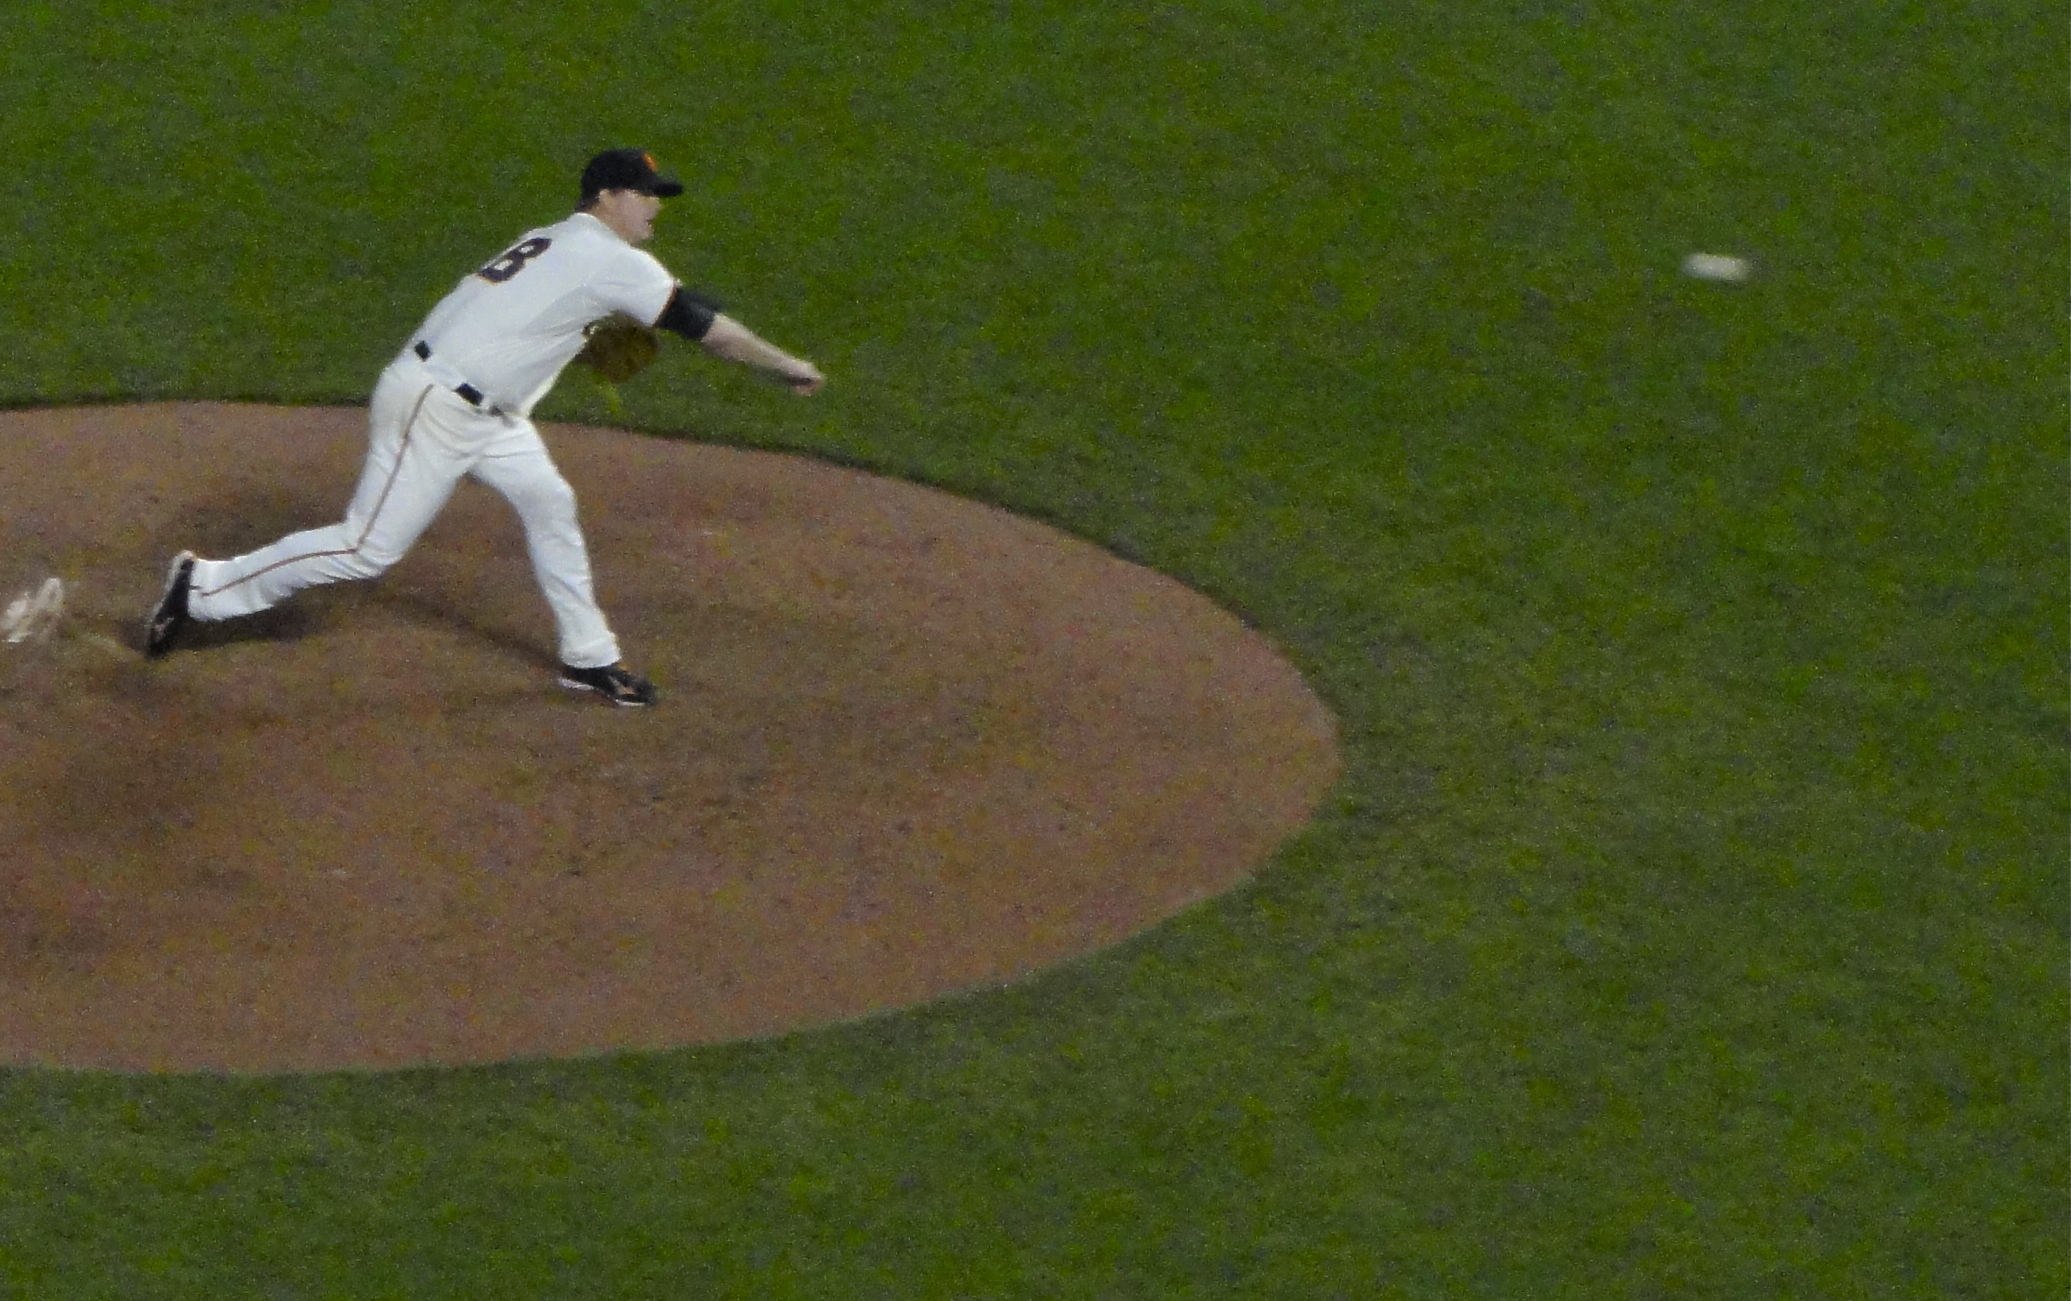 Giants Cain Do 1-0